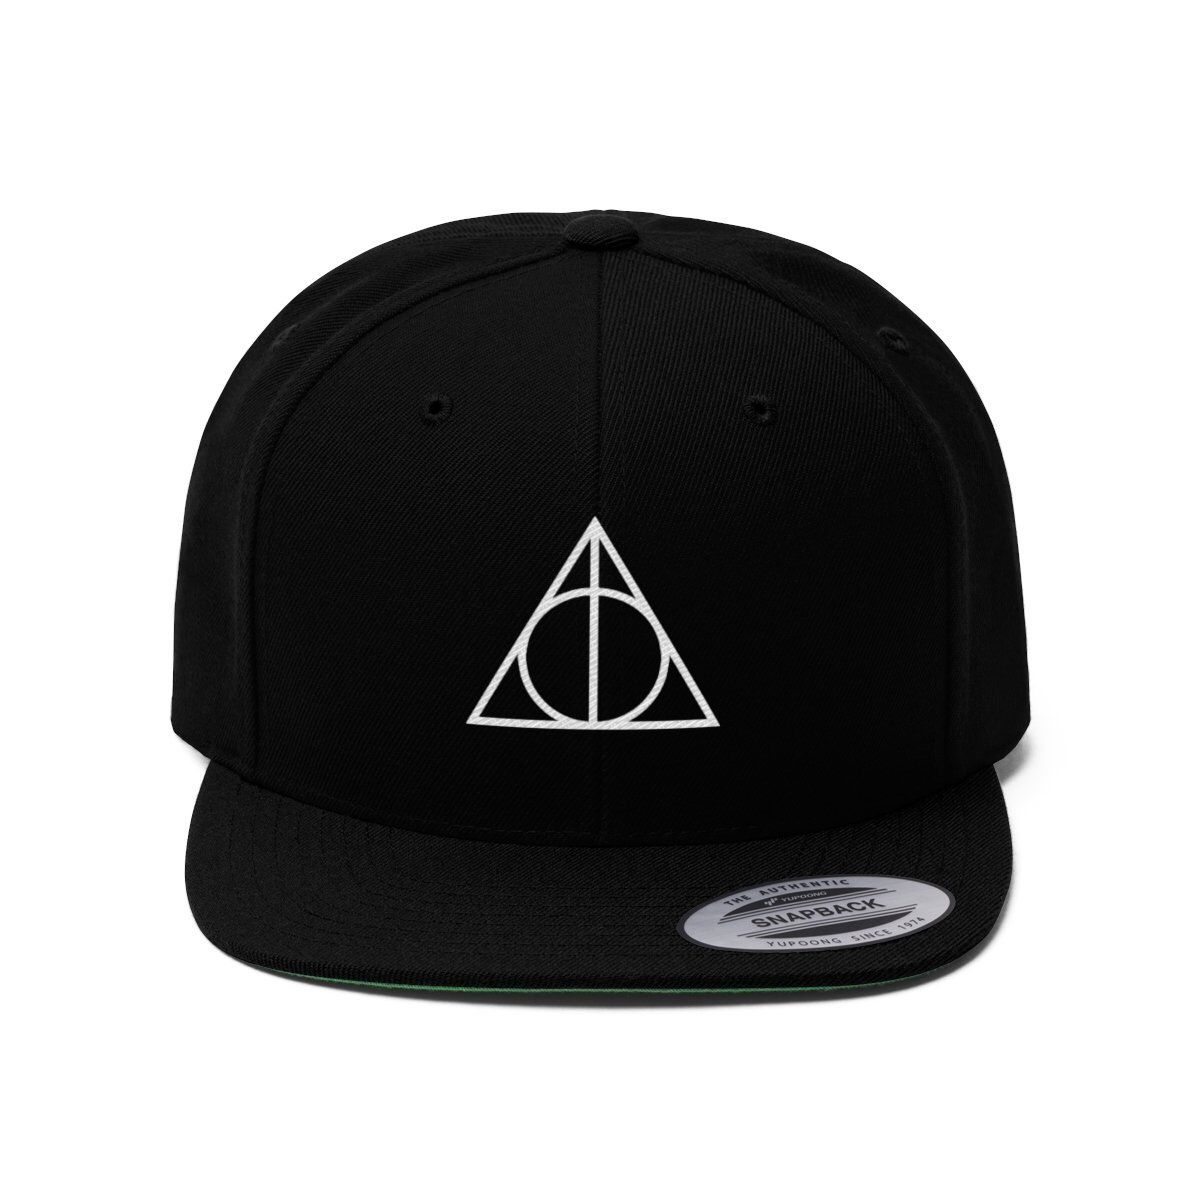 c5d44714551 Embroidered Harry Potter Inspired Flat Bill Hat